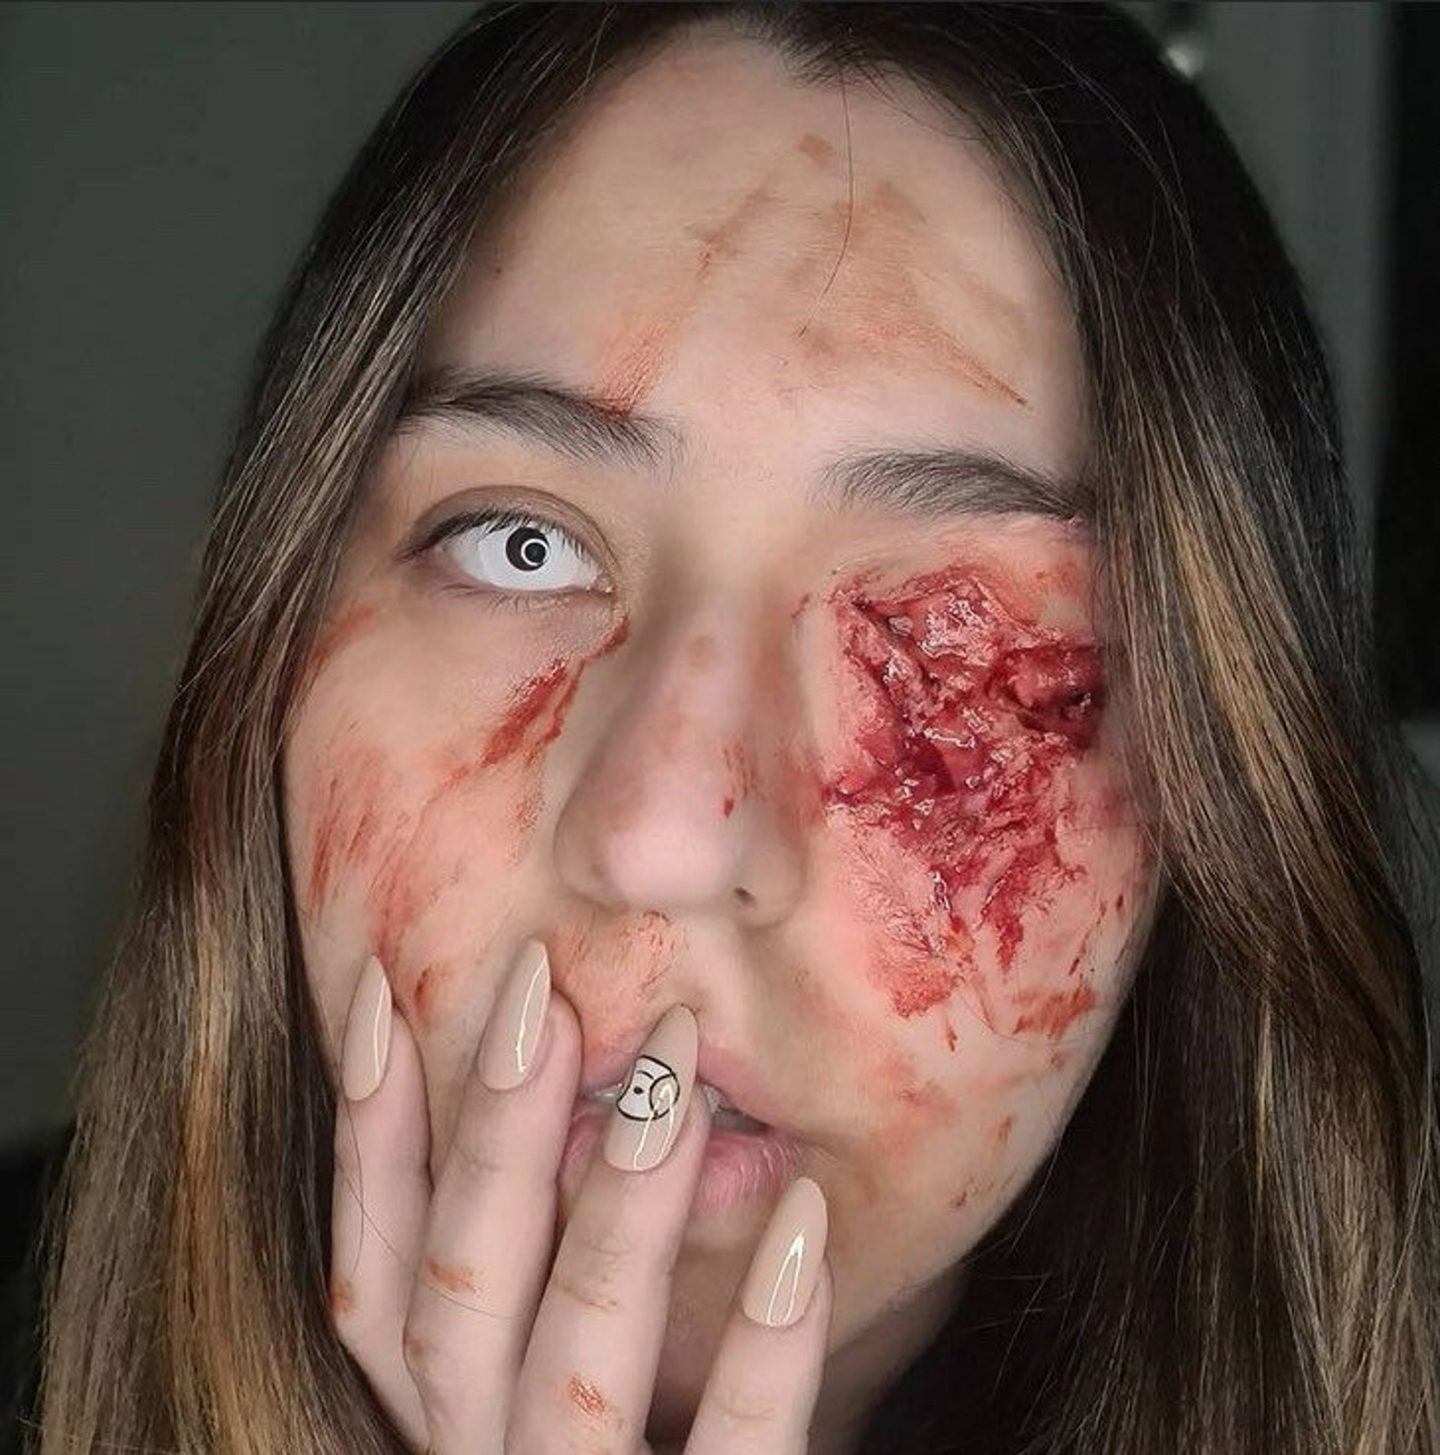 Gauged Out Eye Wound Halloween SFX Silicone Face Prosthetic